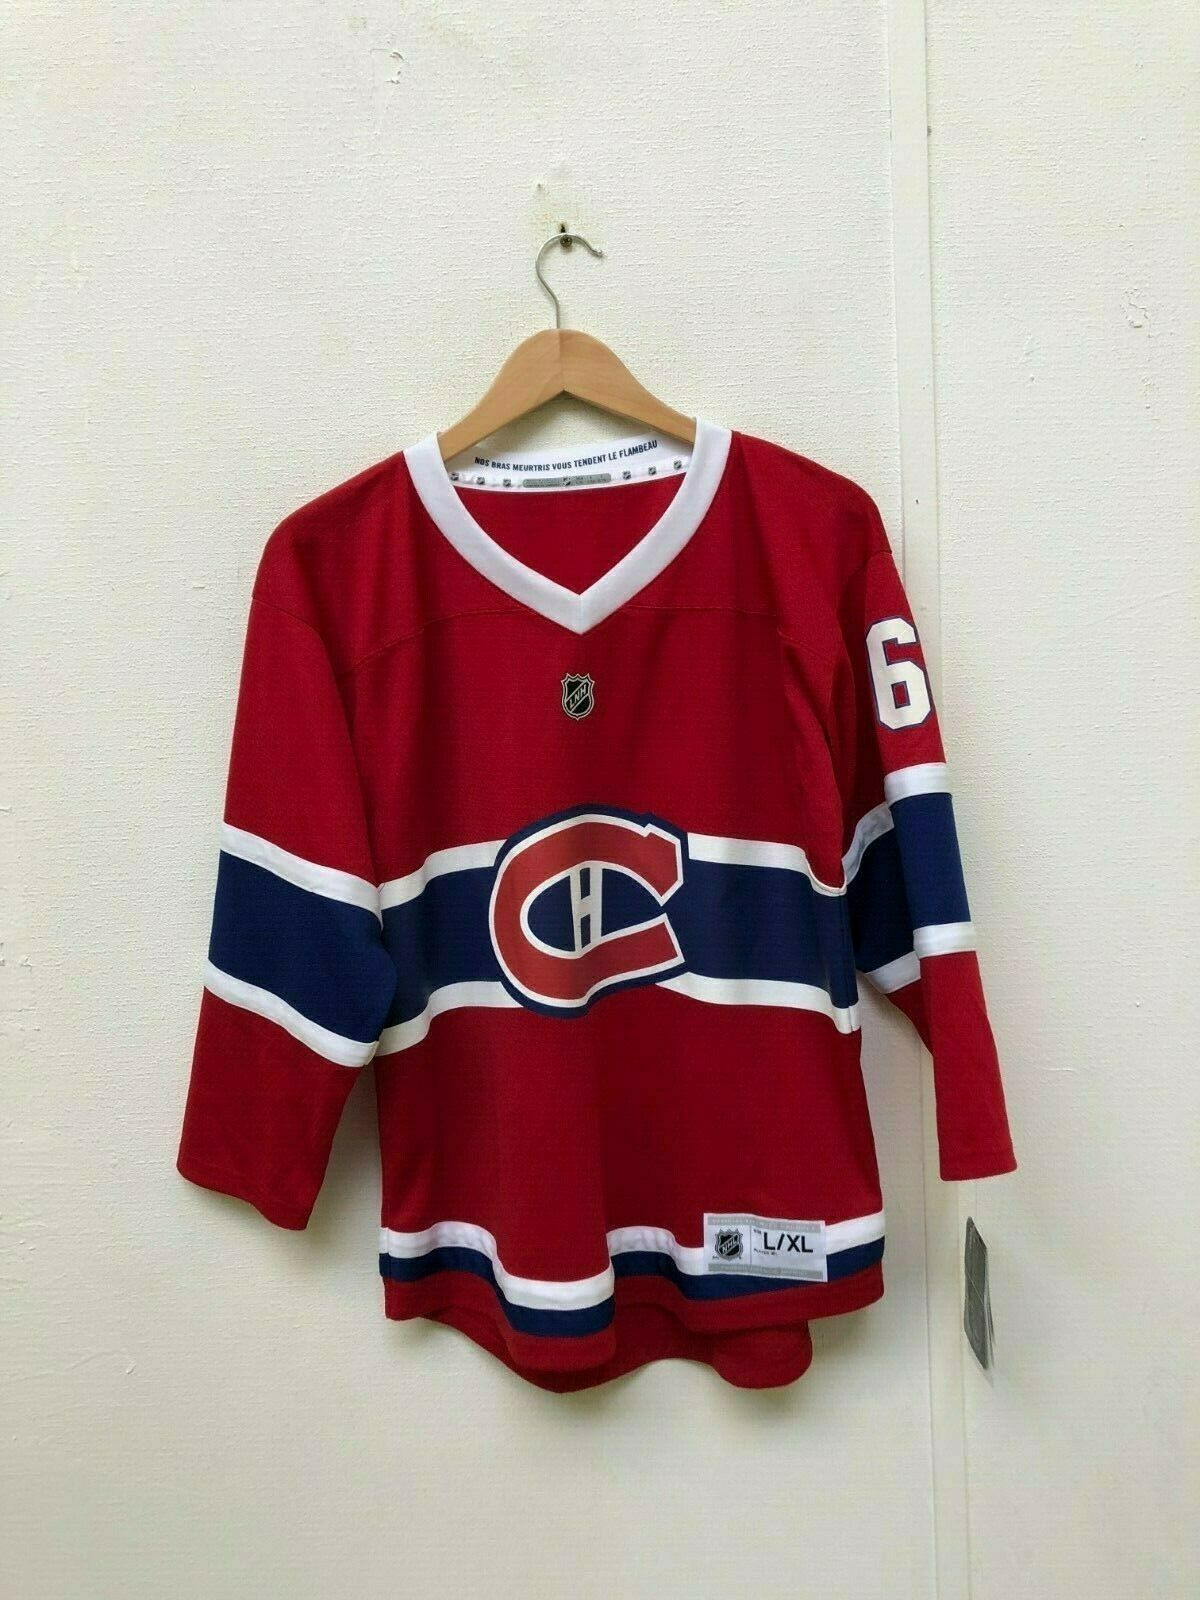 Montreal Canadiens Kid's Home LS Jersey - L XL - NepomNew With Defects